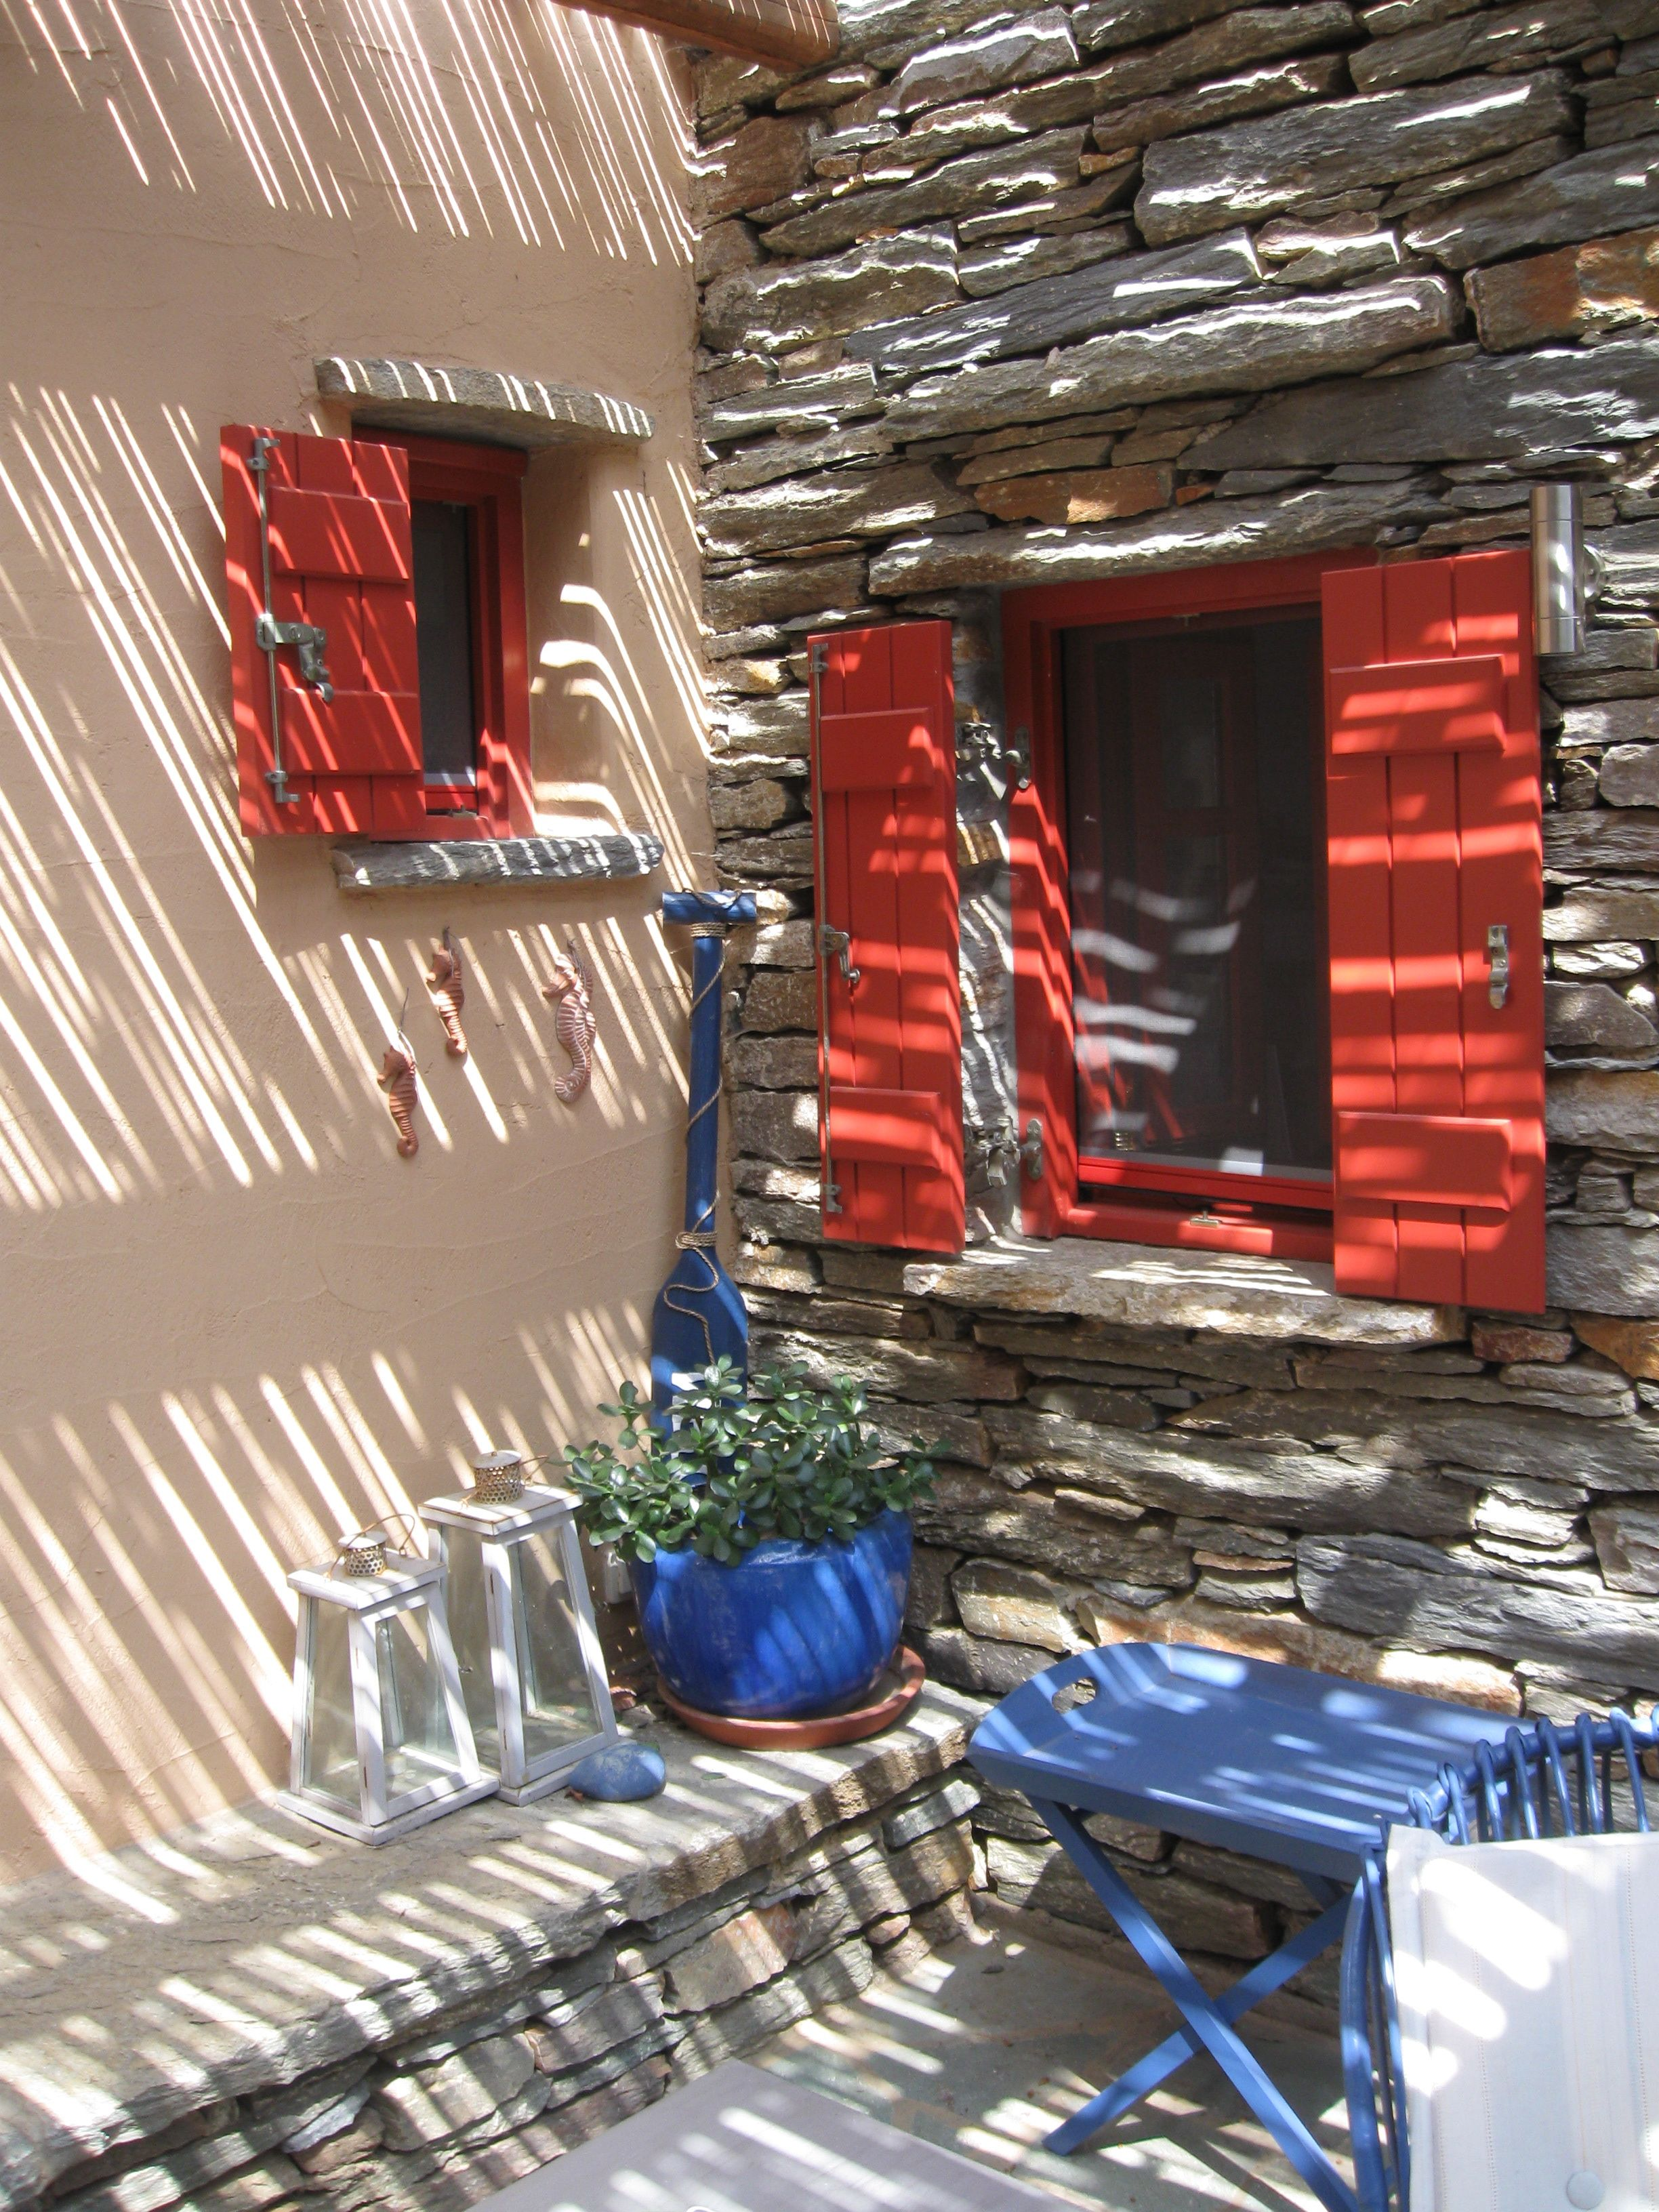 Back Porch Stone House Otzias Kea Cyclades Islands